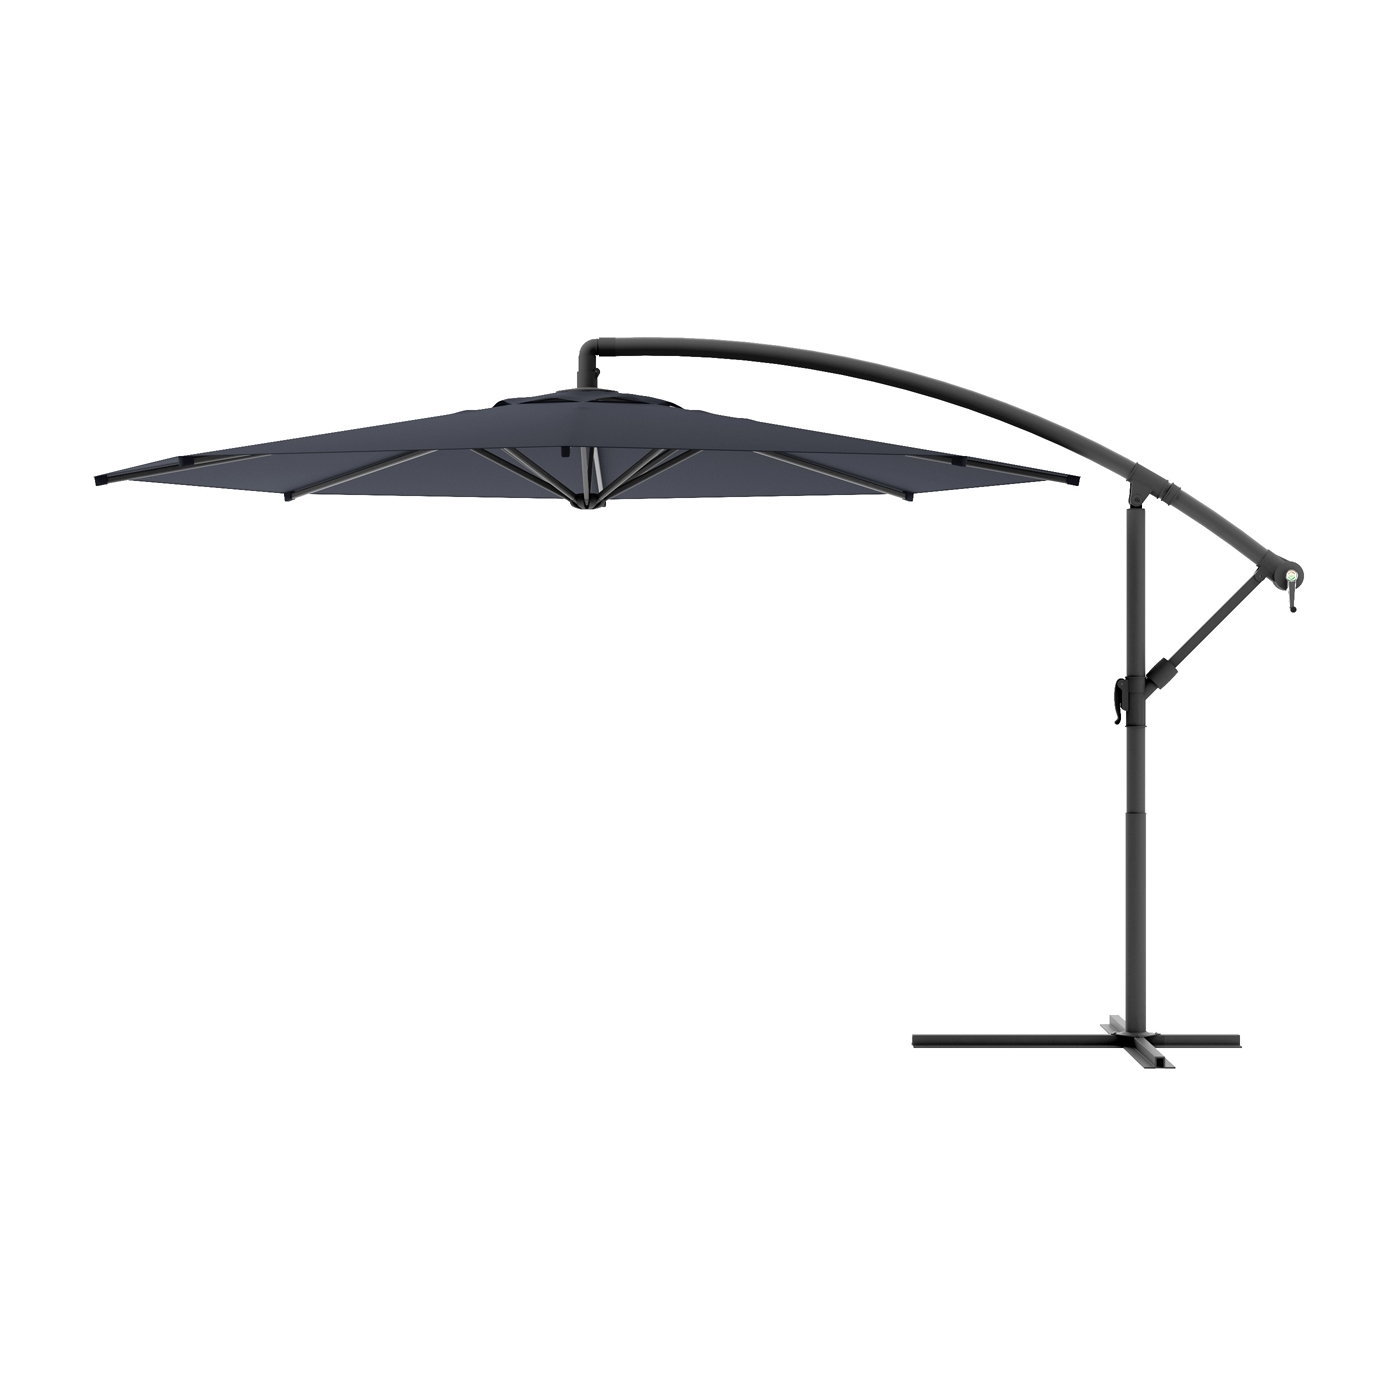 Black And White Patio Umbrellas Regarding Newest Corliving Ppu 4 Cantilever Patio Umbrella (View 16 of 20)